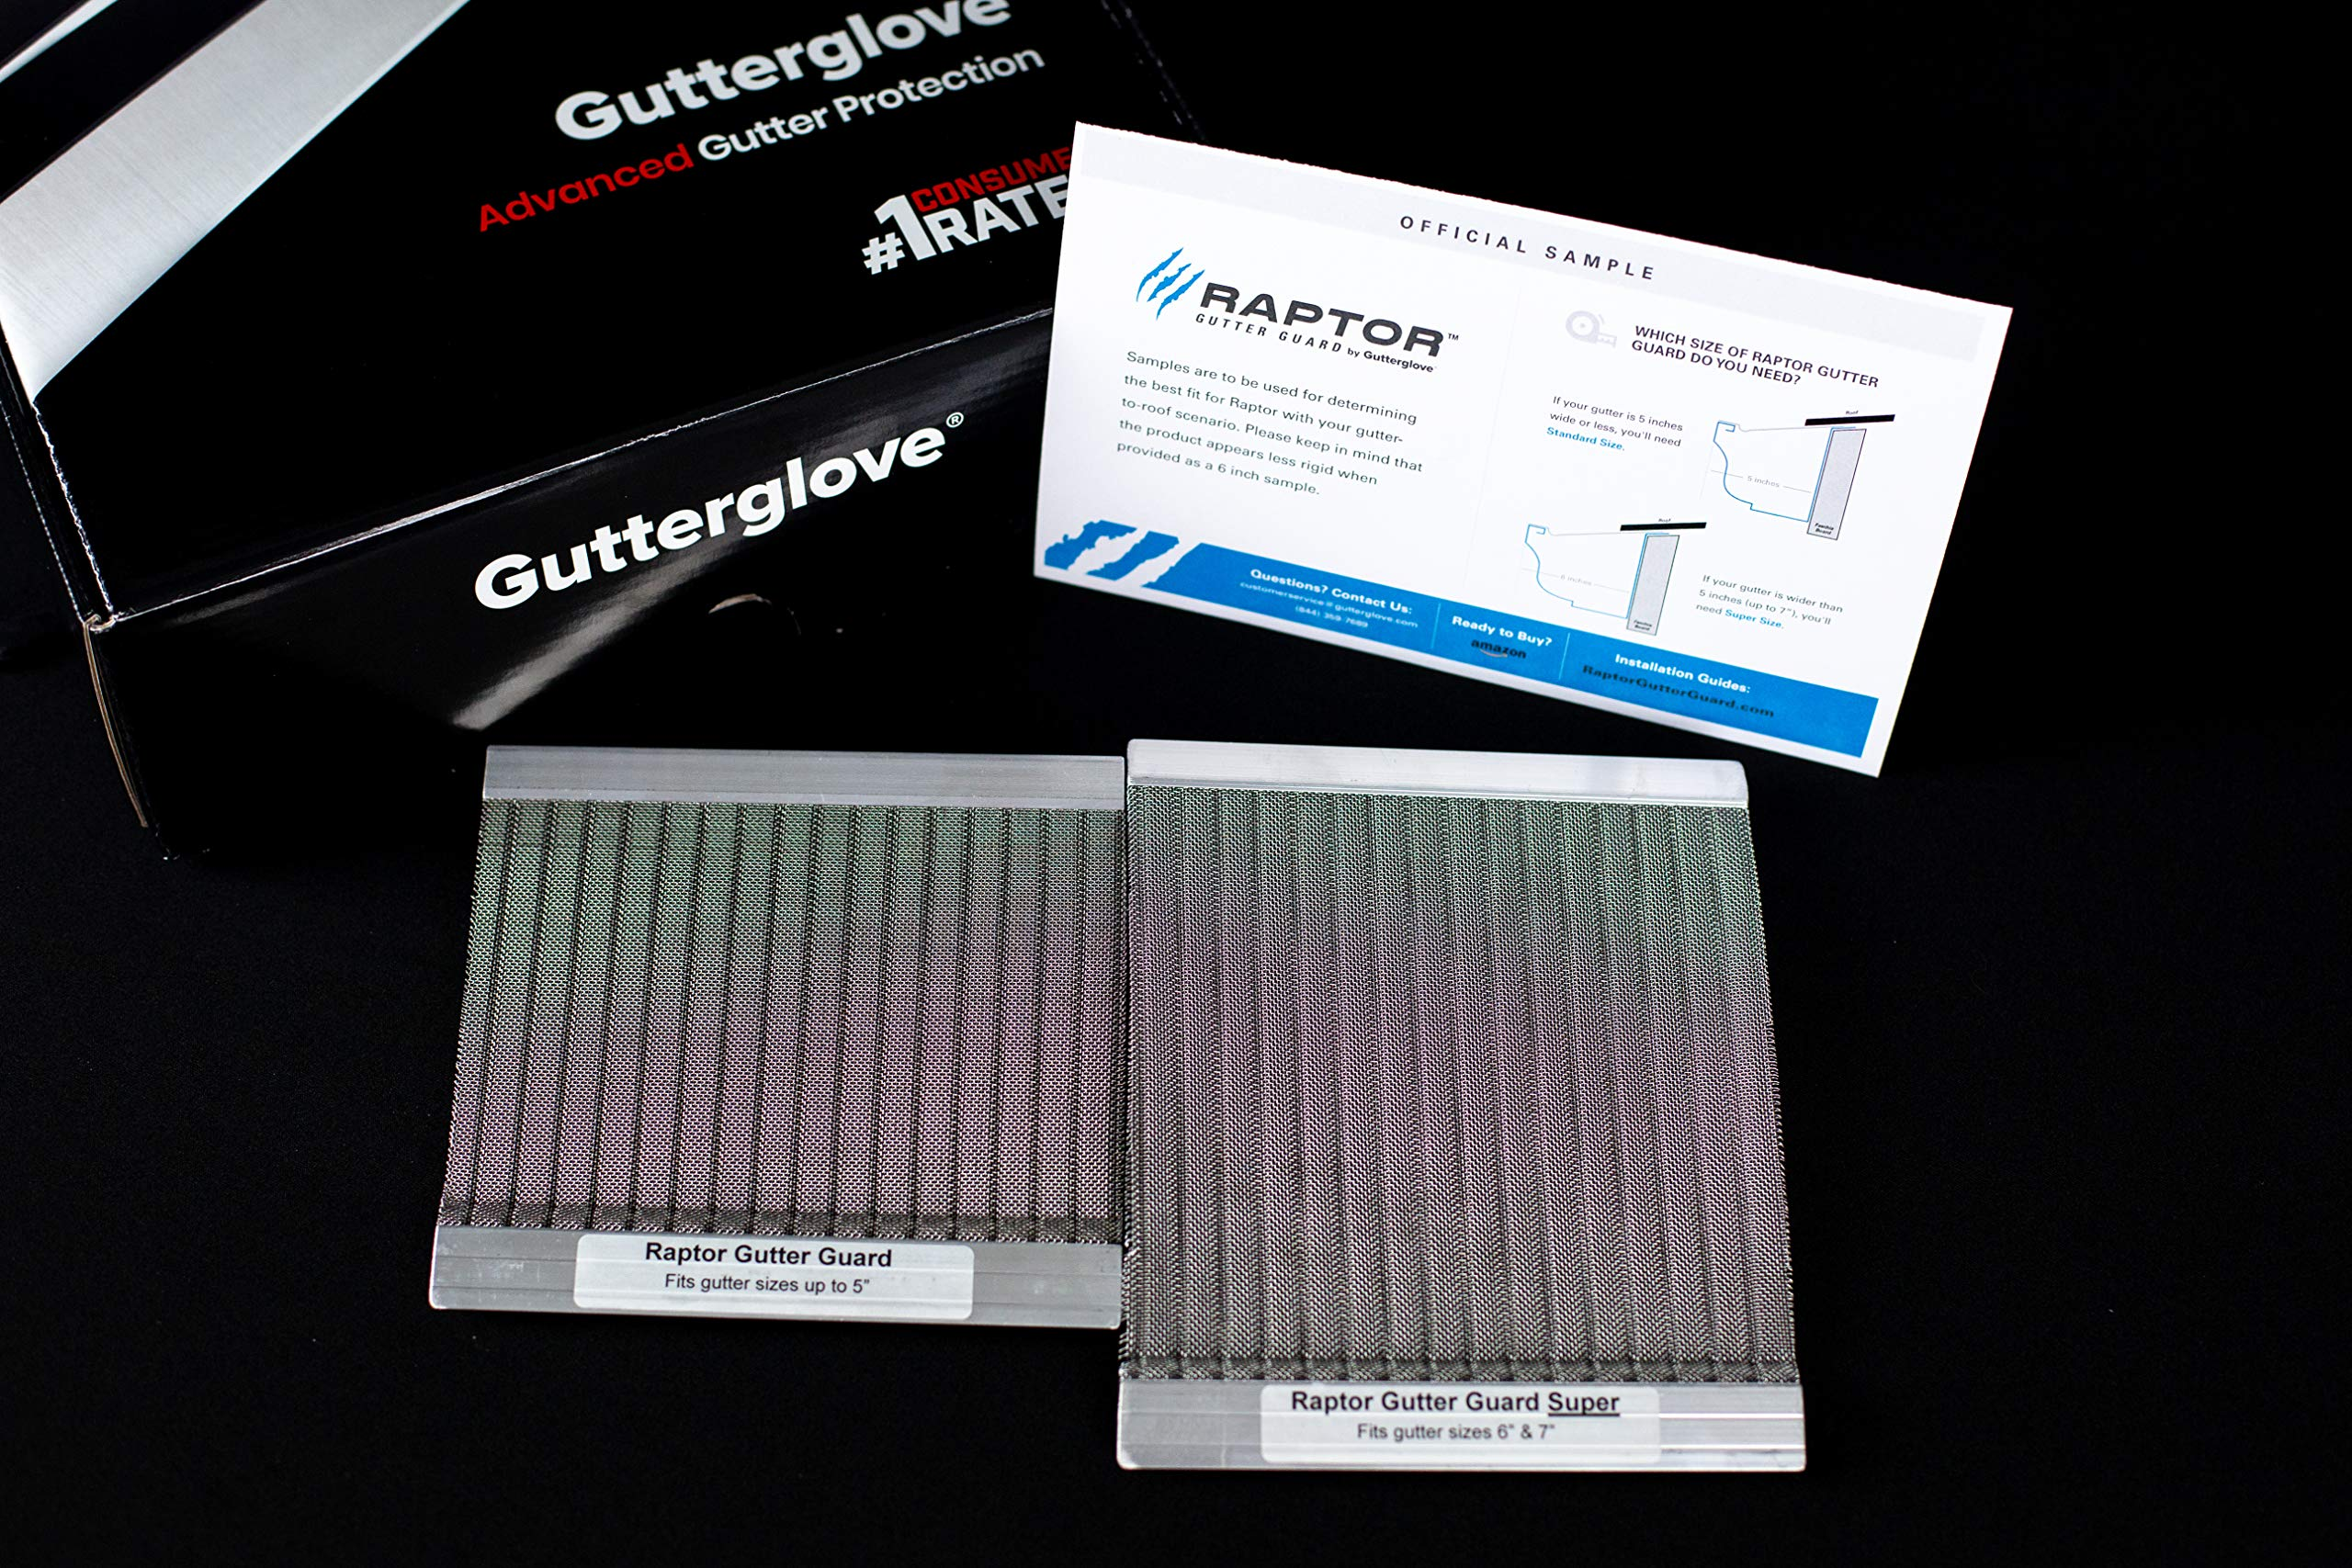 Stainless Steel Micro-Mesh, Raptor Gutter Guard: A Contractor-Grade DIY Gutter Cover That fits Any roof or Gutter Type- Sample Pack